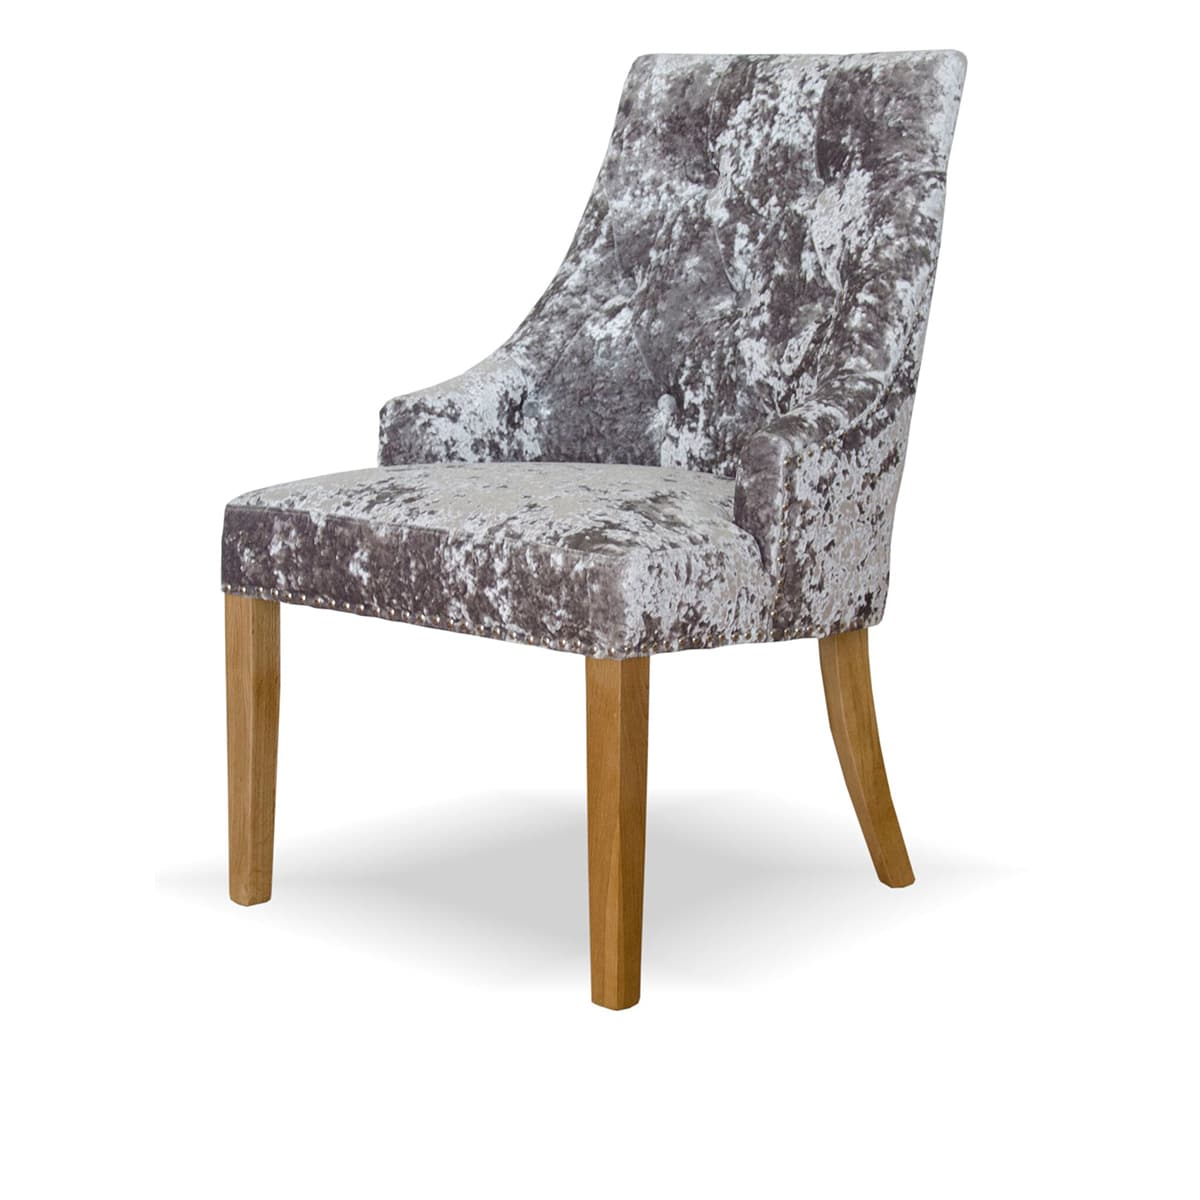 Silver Dining Chairs Willow Crushed Silver Velvet Dining Chair Furniture And